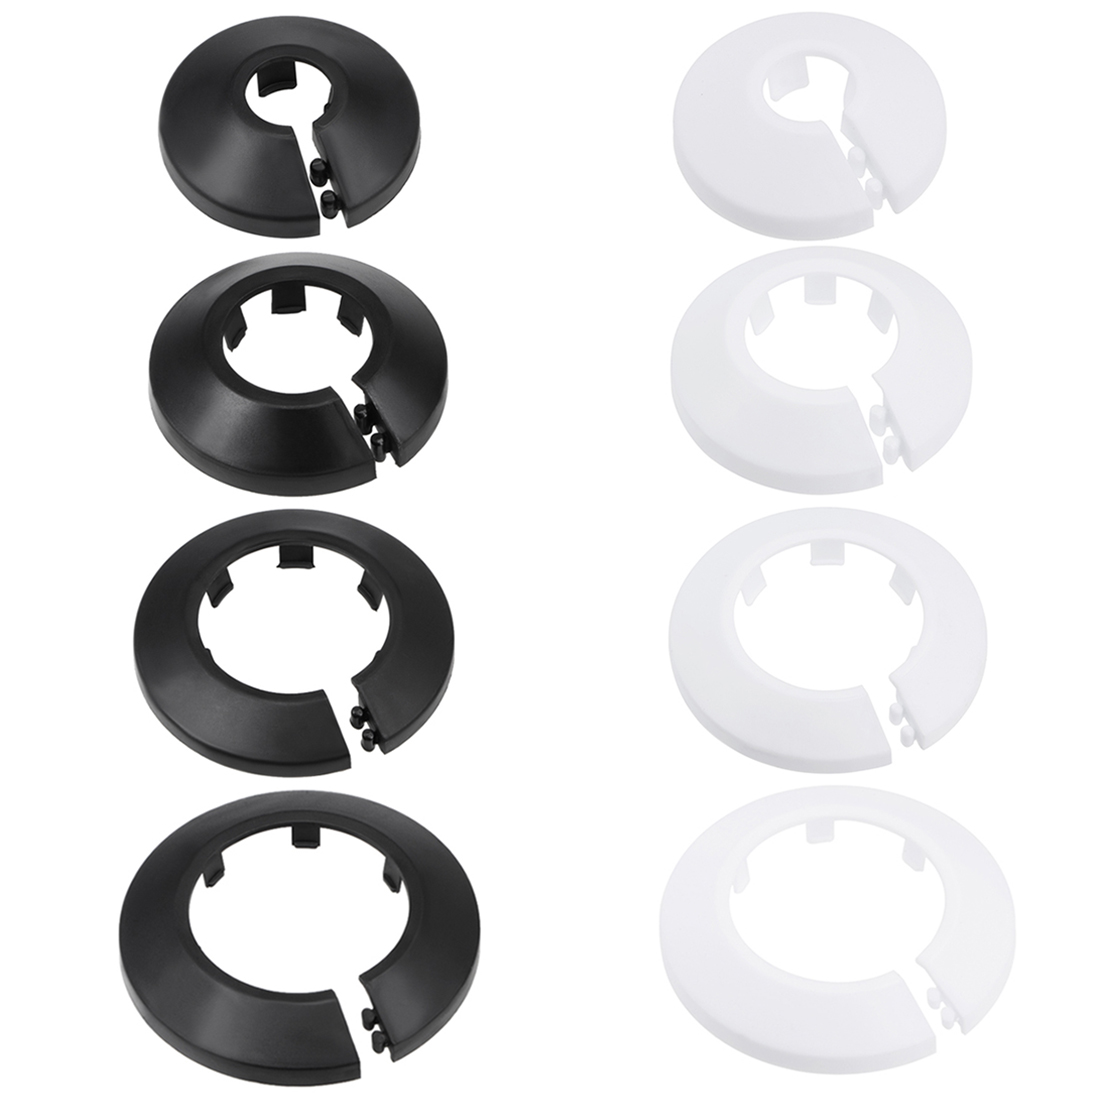 Uxcell 8 Pcs Pipe Collar 13/17/21/25/33/35/41.5/44/50mm PP Radiator Escutcheon Water Pipe Cover Decoration White/Black